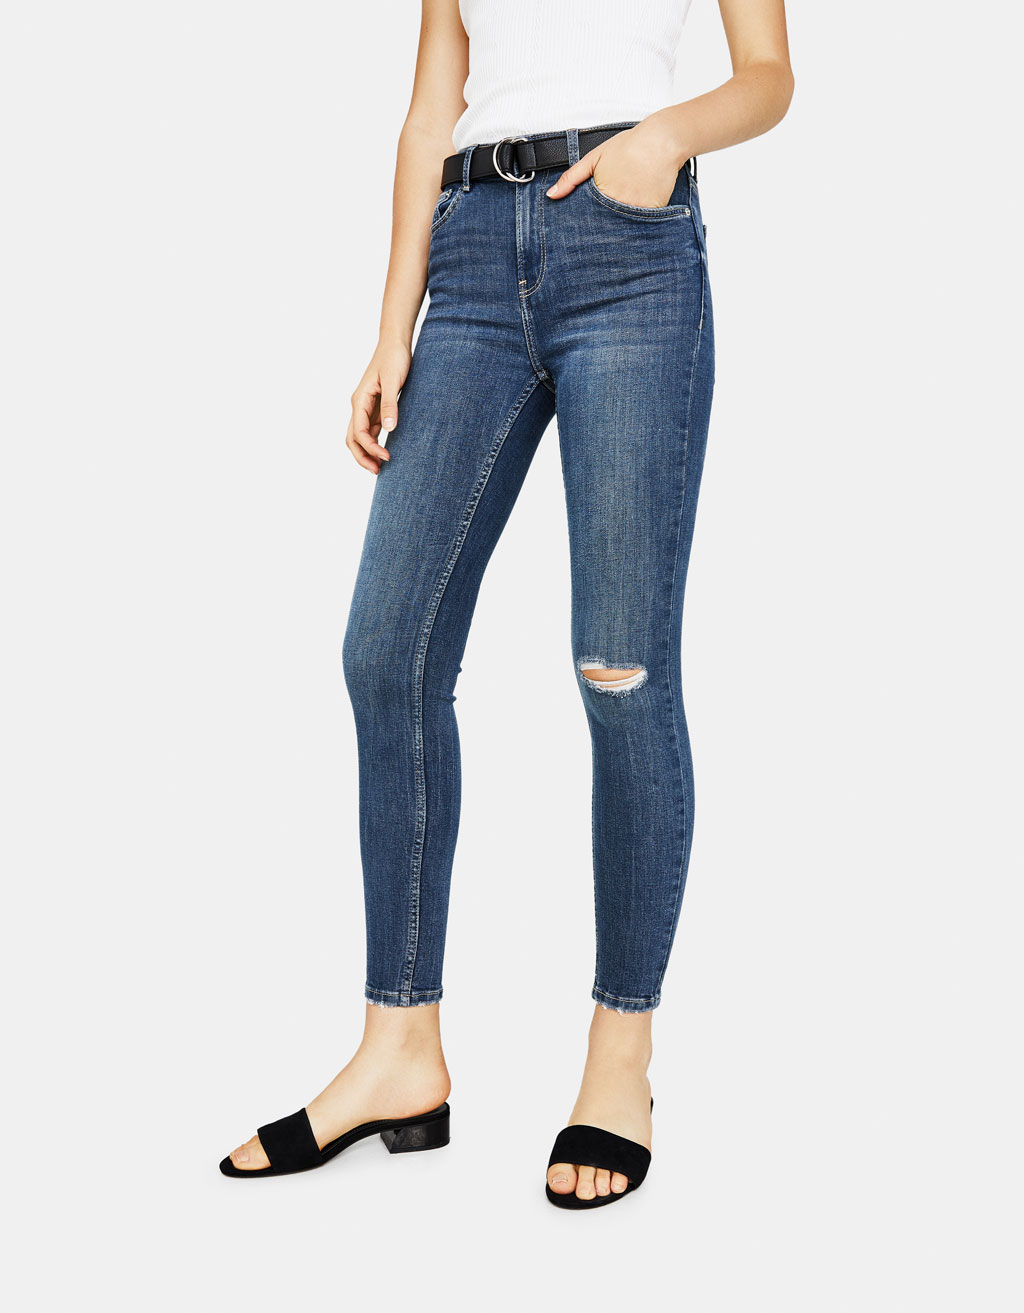 Jean skinny taille moyenne 5 poches